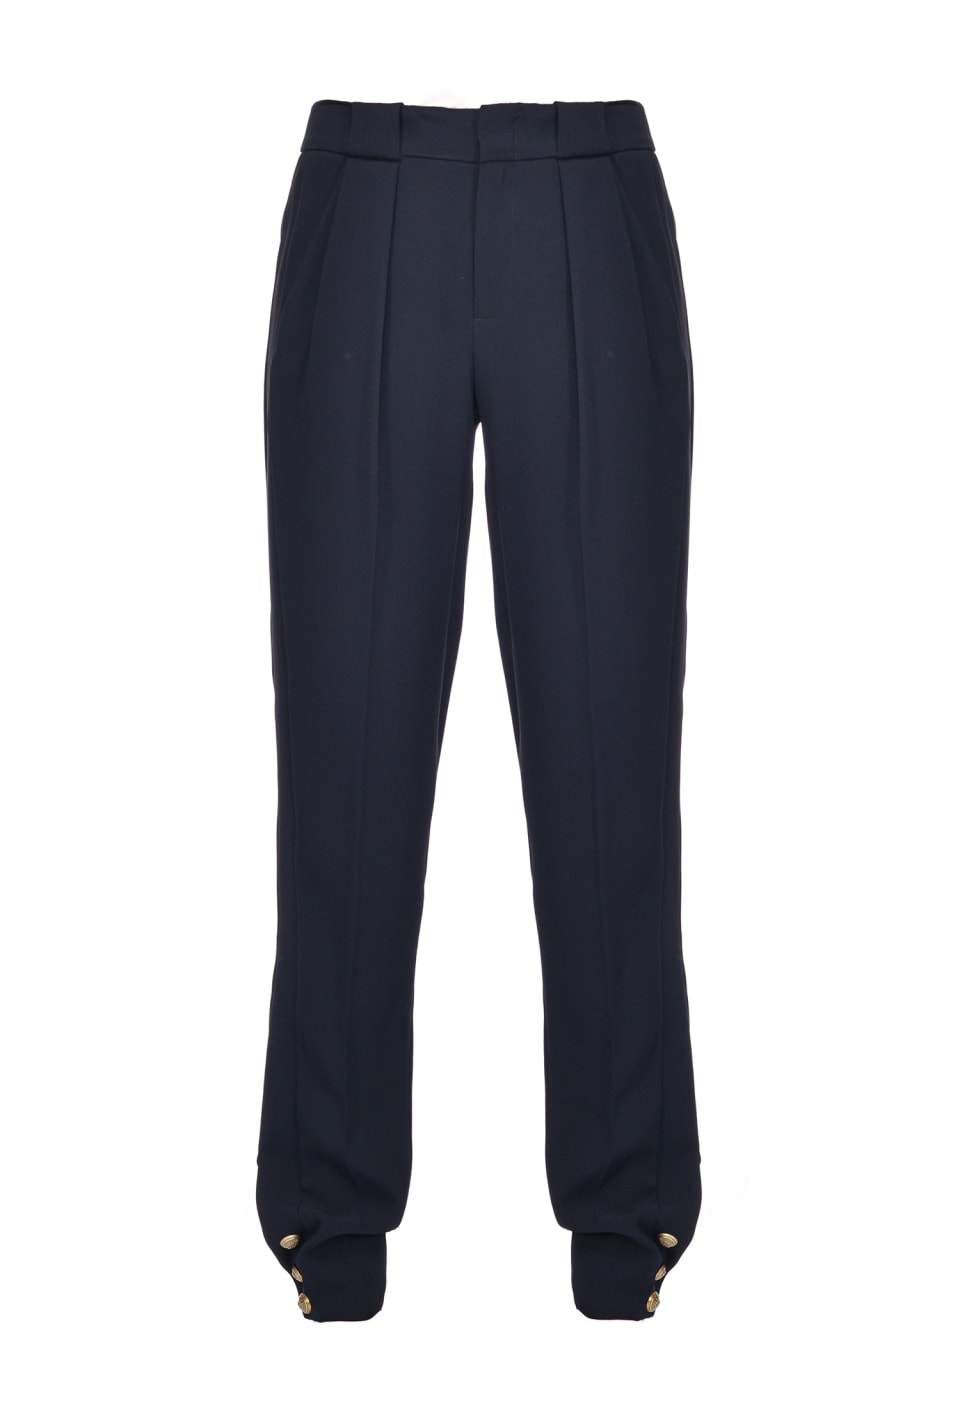 Trousers with buttons at the hem